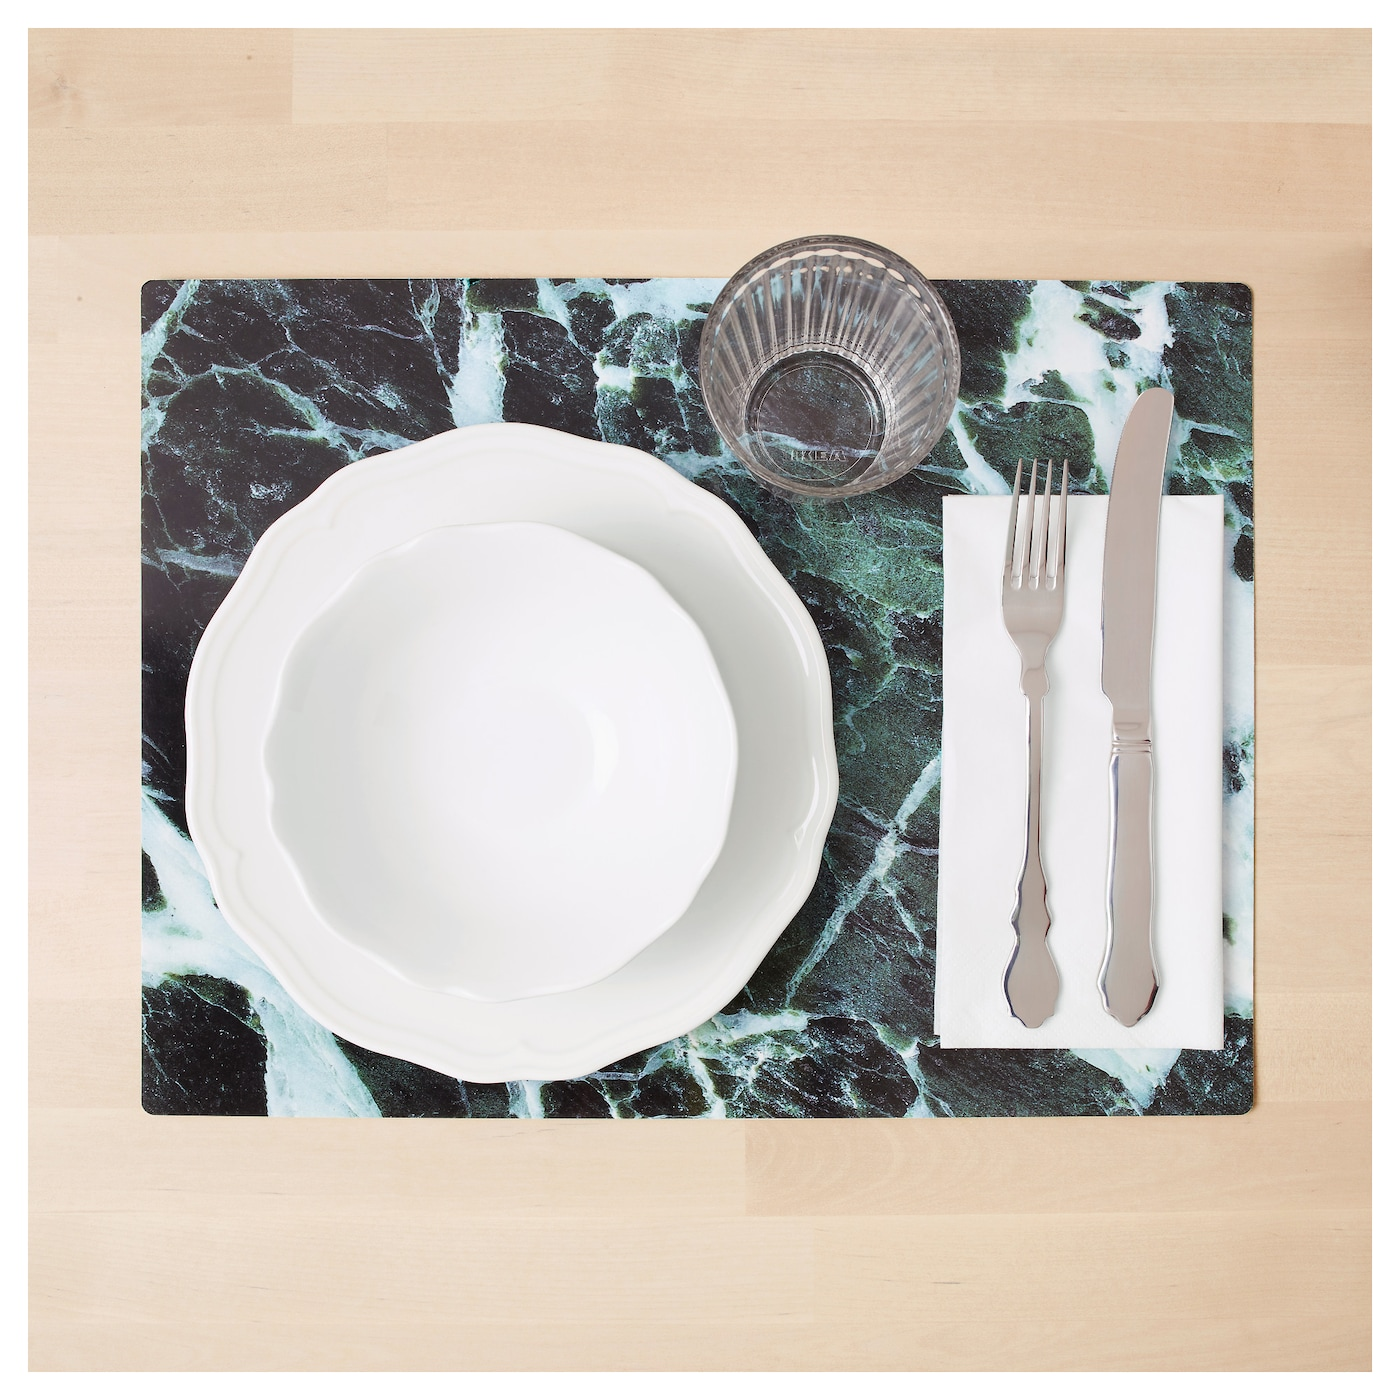 IKEA BORGERLIG place mat Protects the table top surface and reduces noise from plates and cutlery.